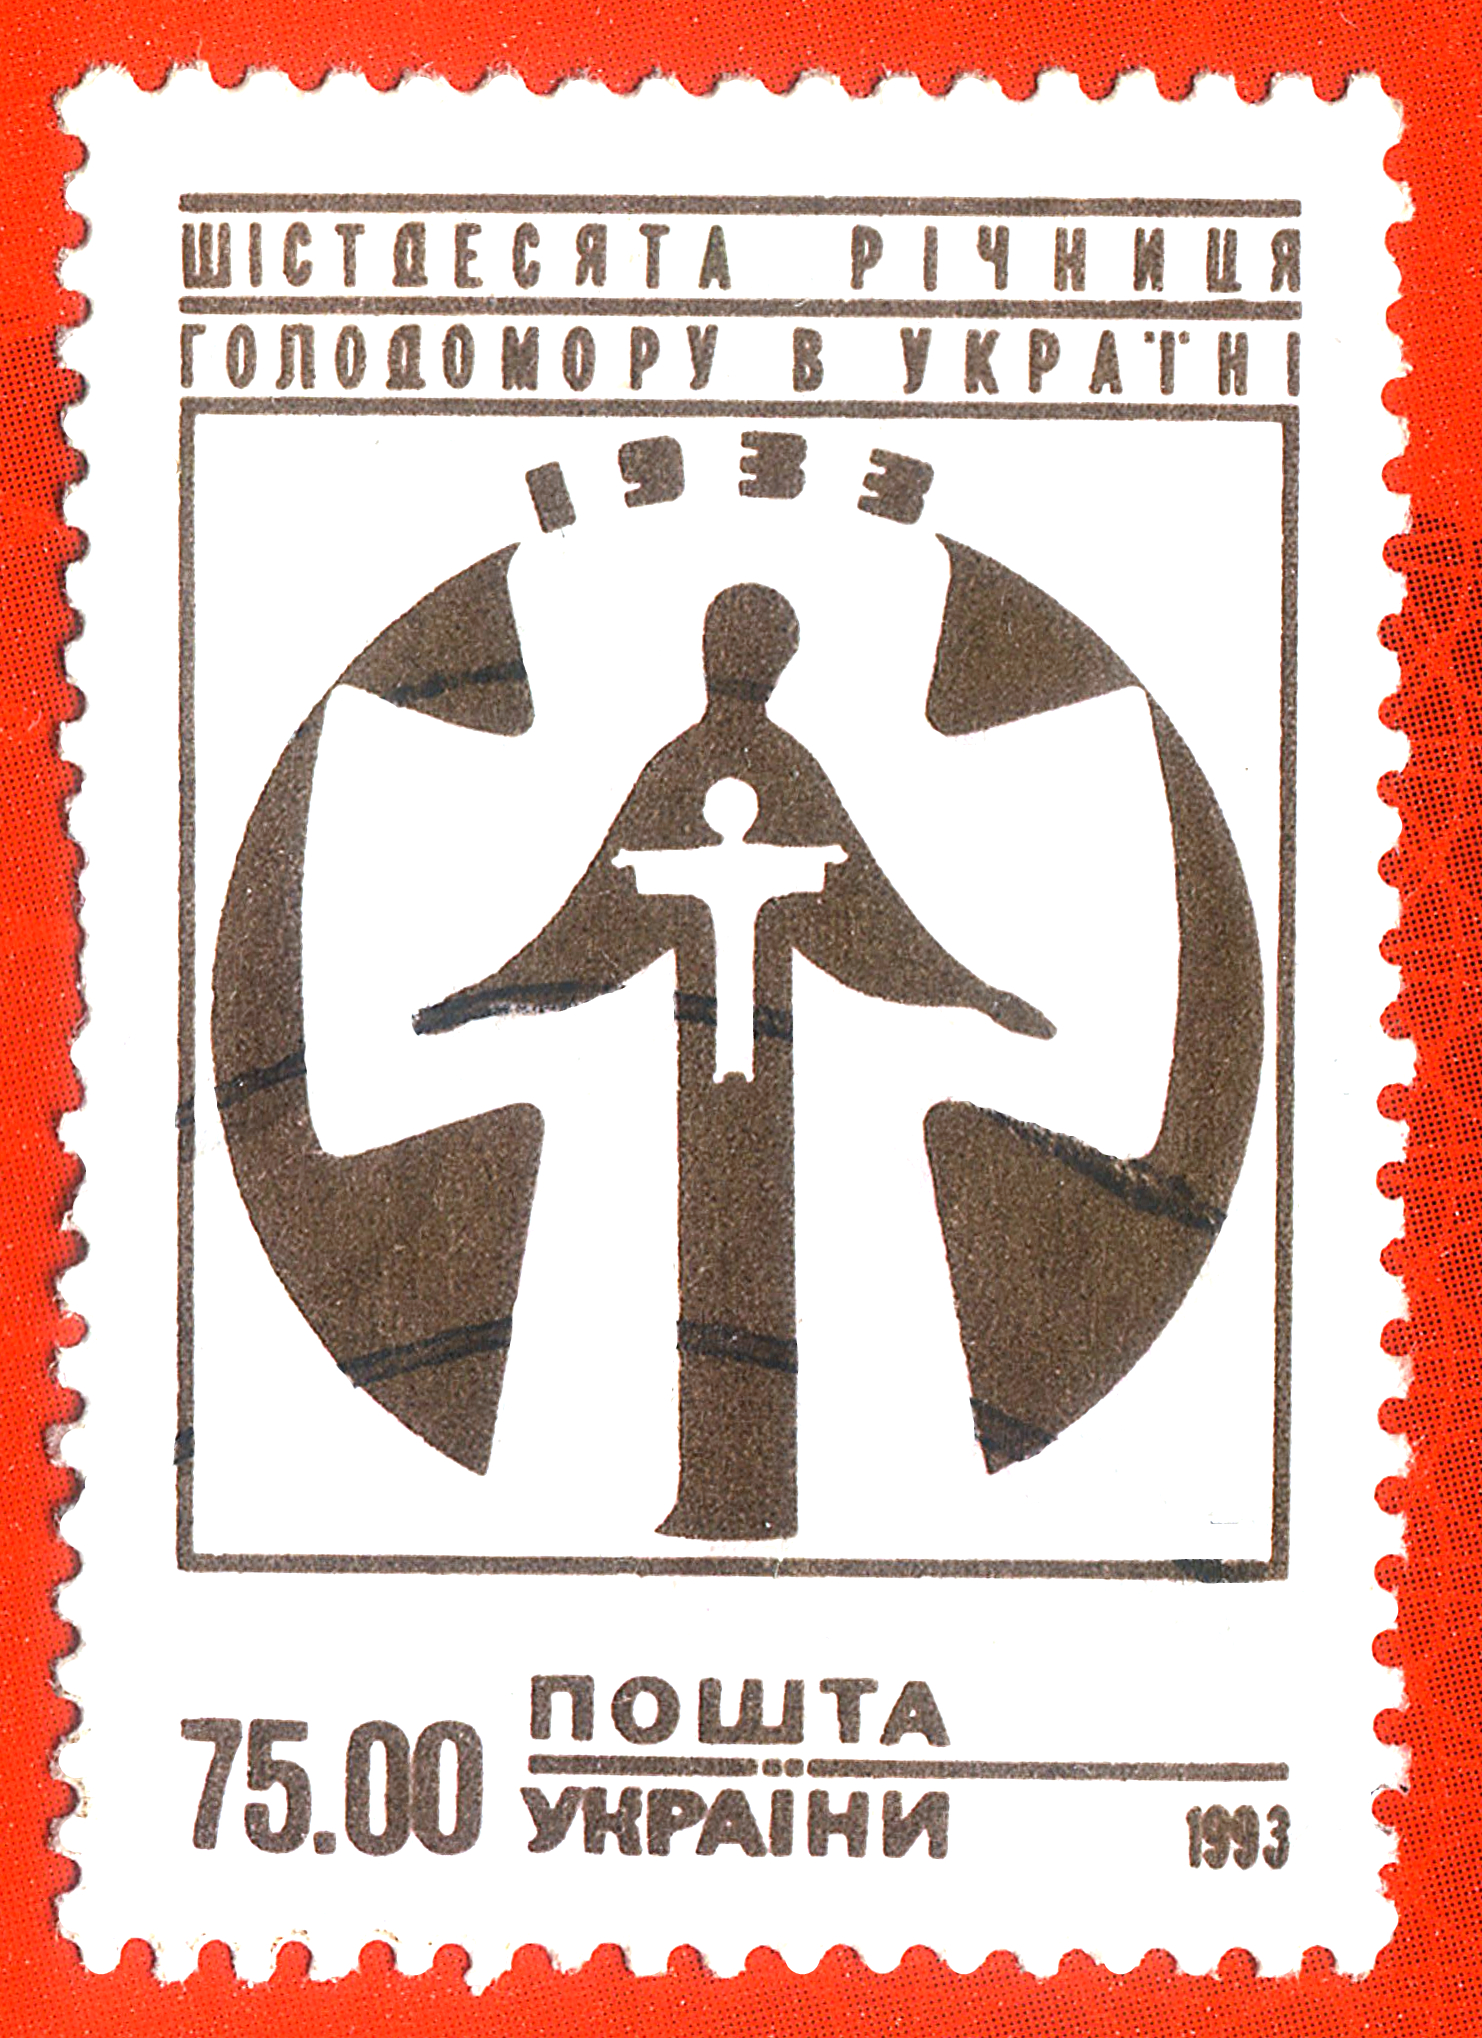 Golodomor Stamps of Ukraine